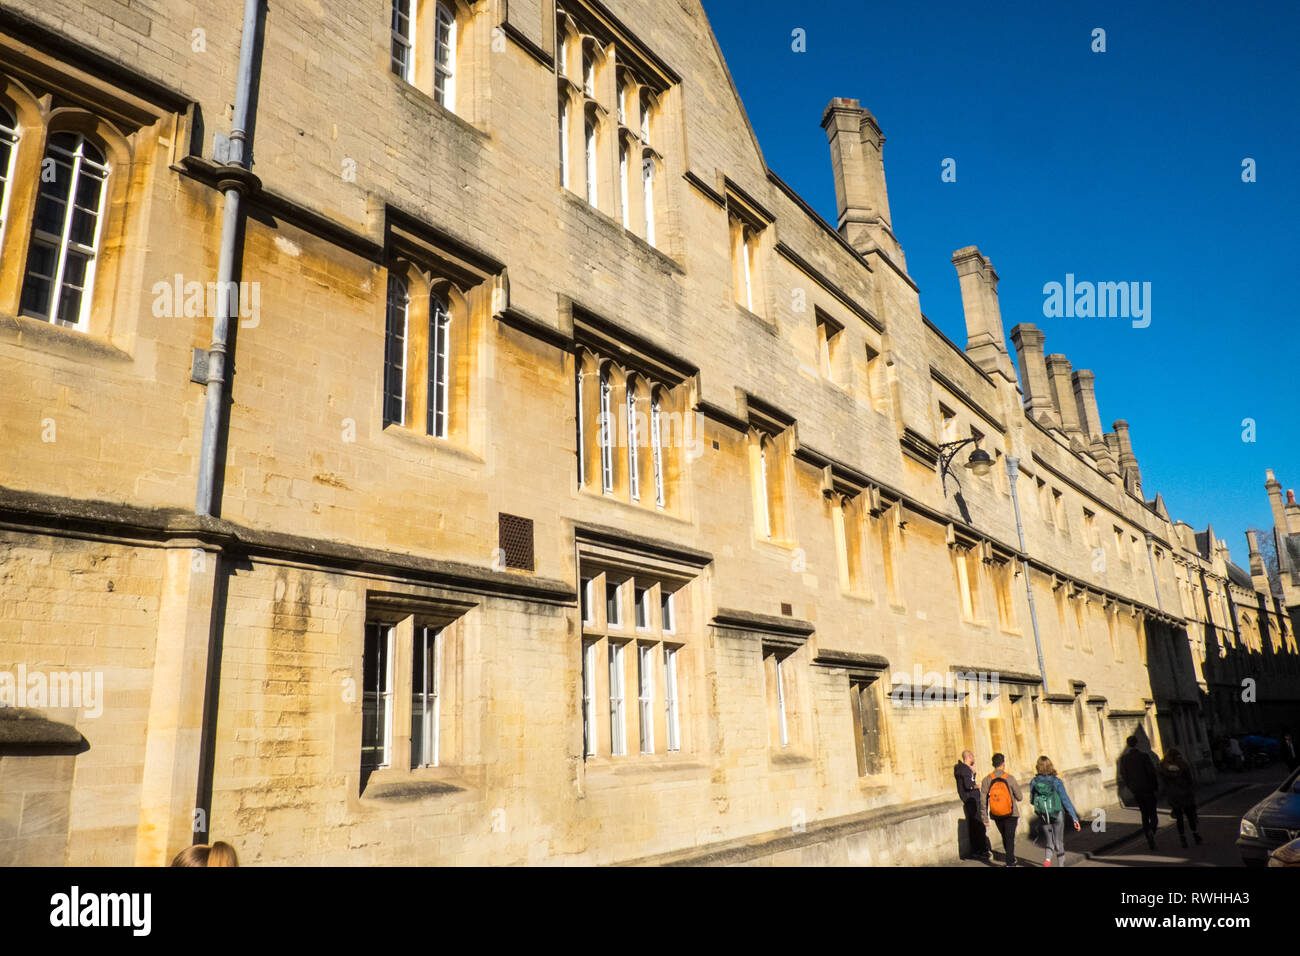 Jesus College Oxford,stone,building,on,Market Street,Oxford,university town,Oxford University,town,city,Oxfordshire,Cotswolds,England - Stock Image